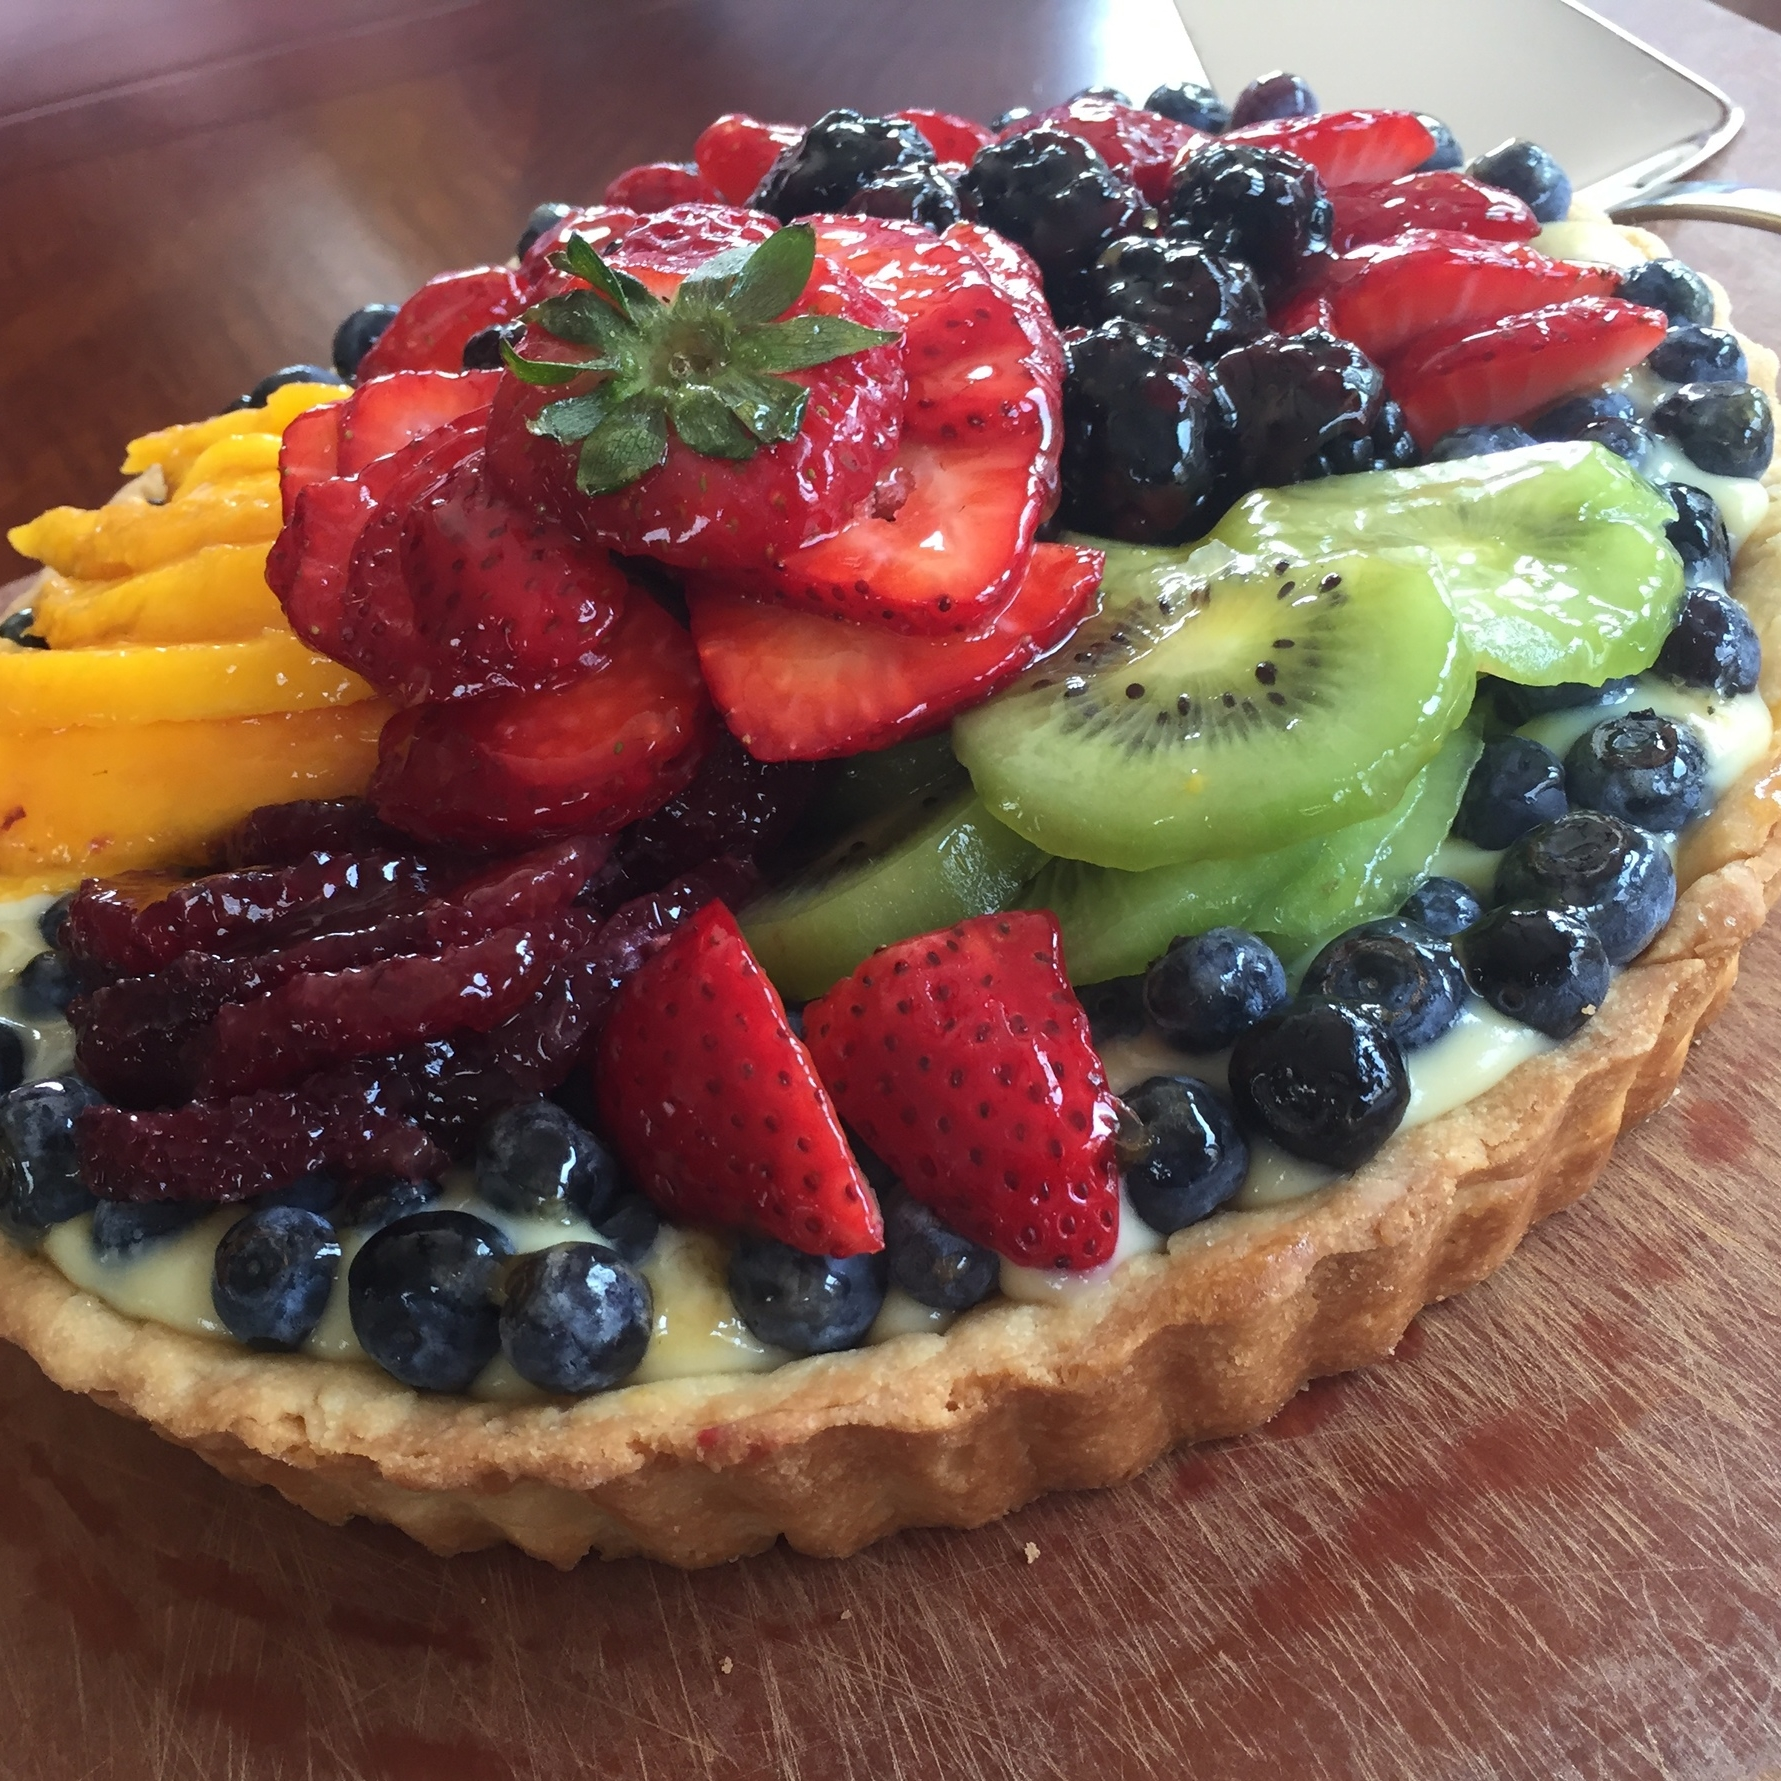 Classic French Fresh Fruit Tart  - made with a classic shortcrust pastry shell, French vanilla cream and fresh fruits, brushed with an apricot glaze.